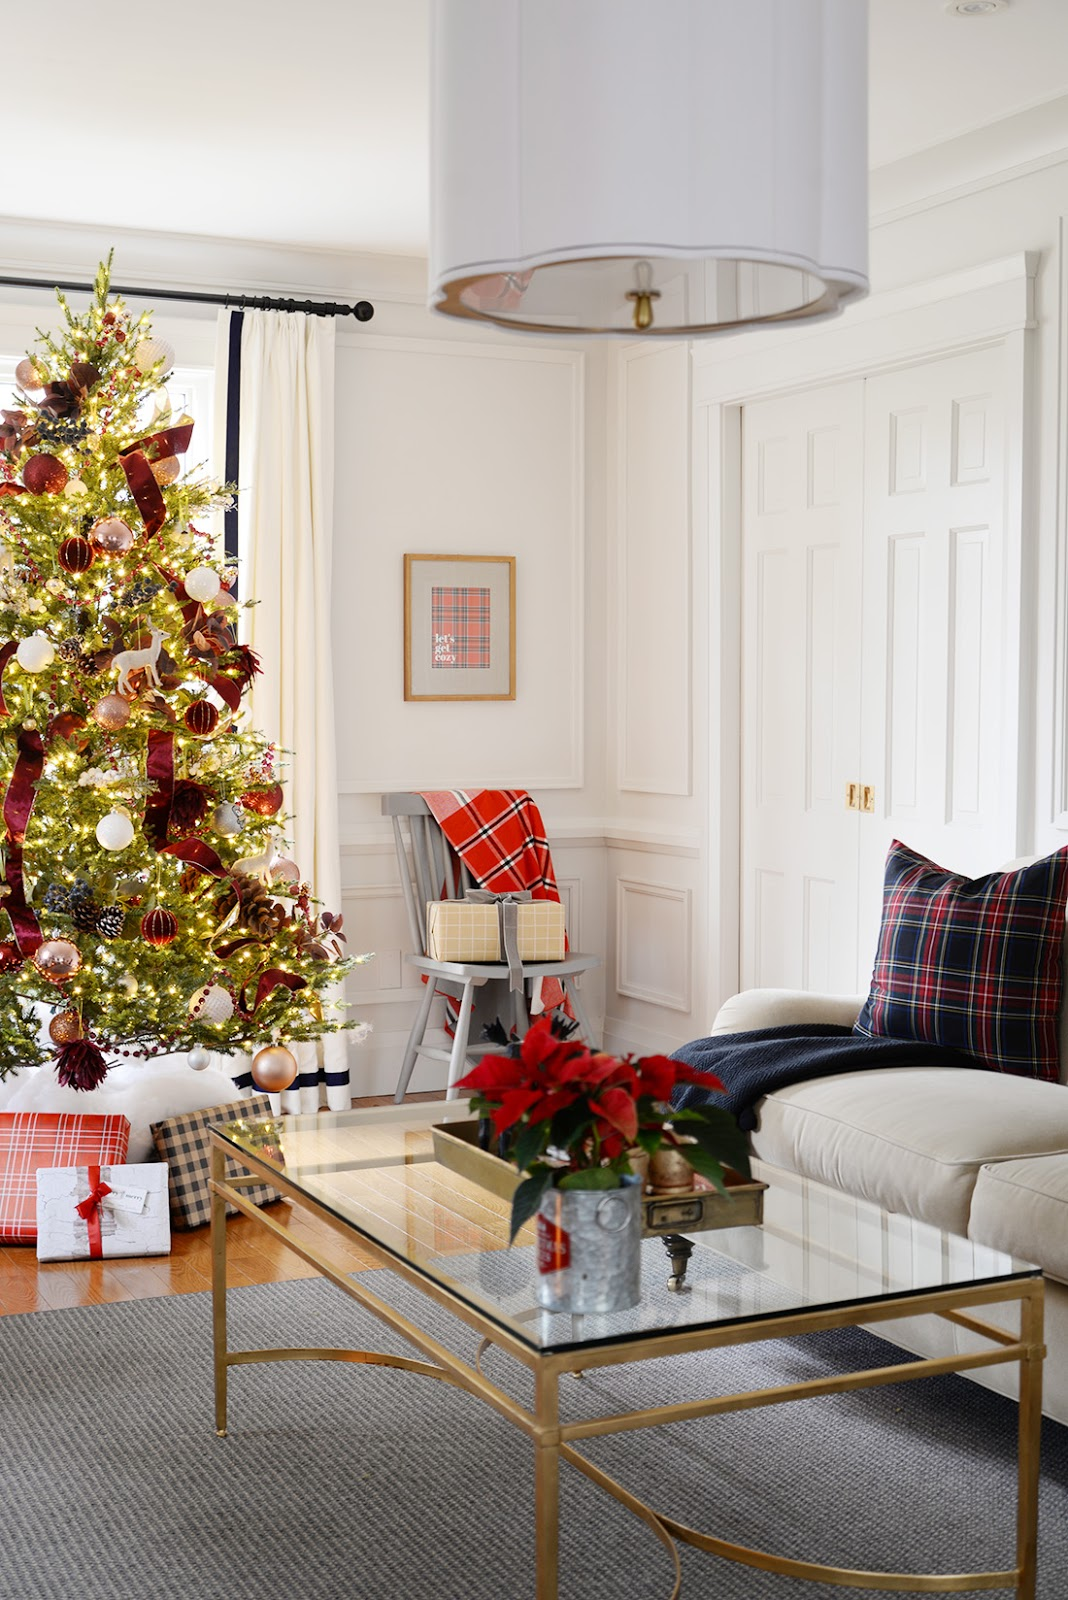 Living room decorated for Christmas with red and white Christmas tree. Canadian Tire mulberry collection Christmas ornaments. Plaid throw and tartan pillows